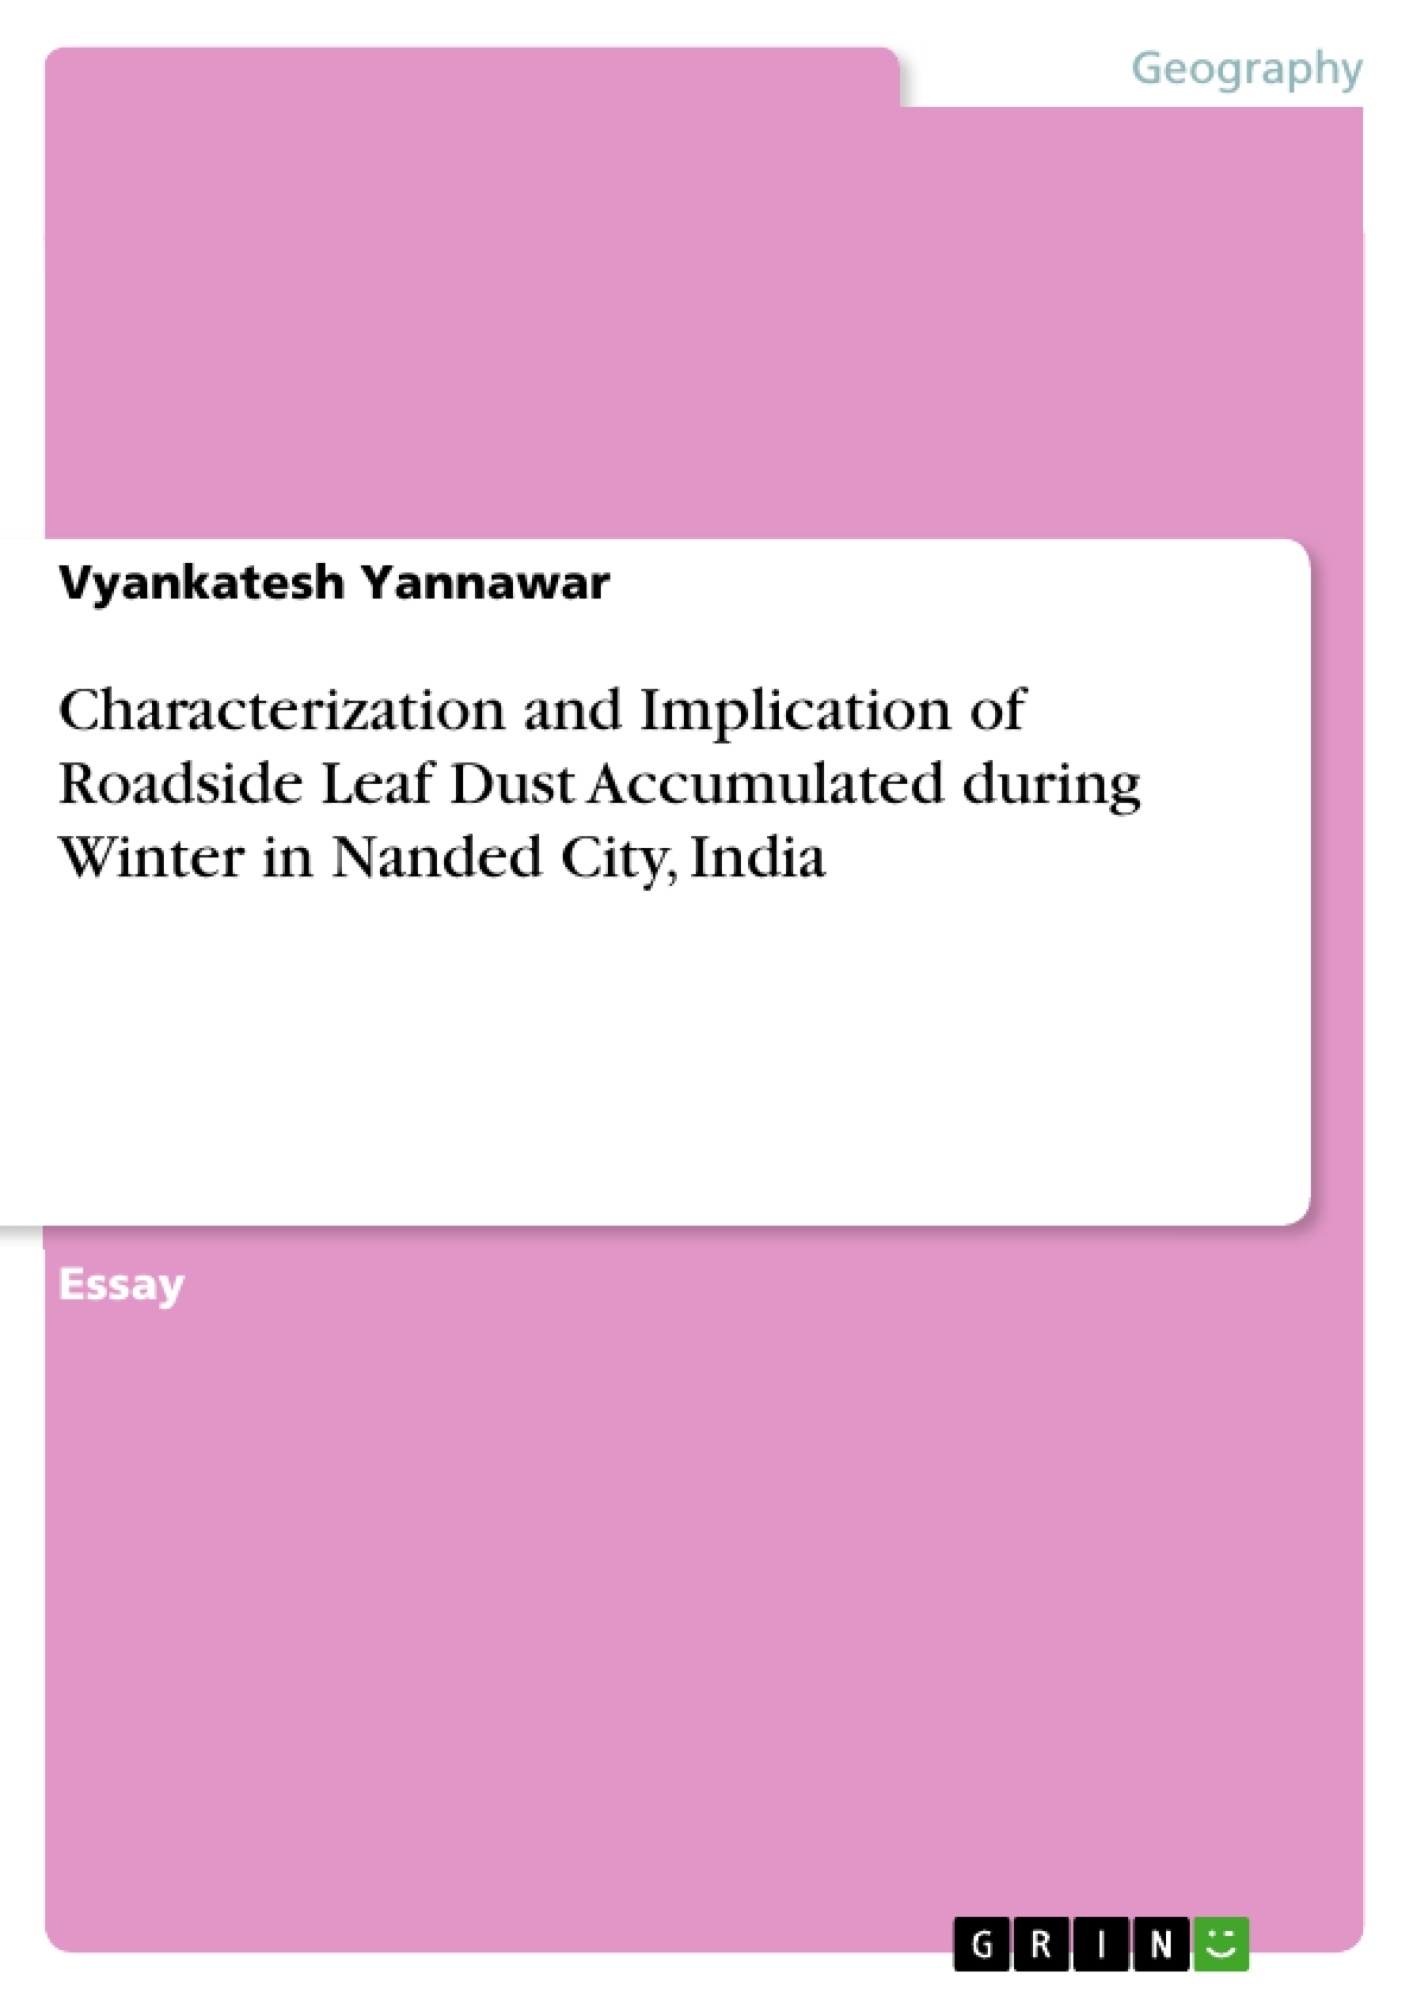 Title: Characterization and Implication of Roadside Leaf Dust Accumulated during Winter in Nanded City, India